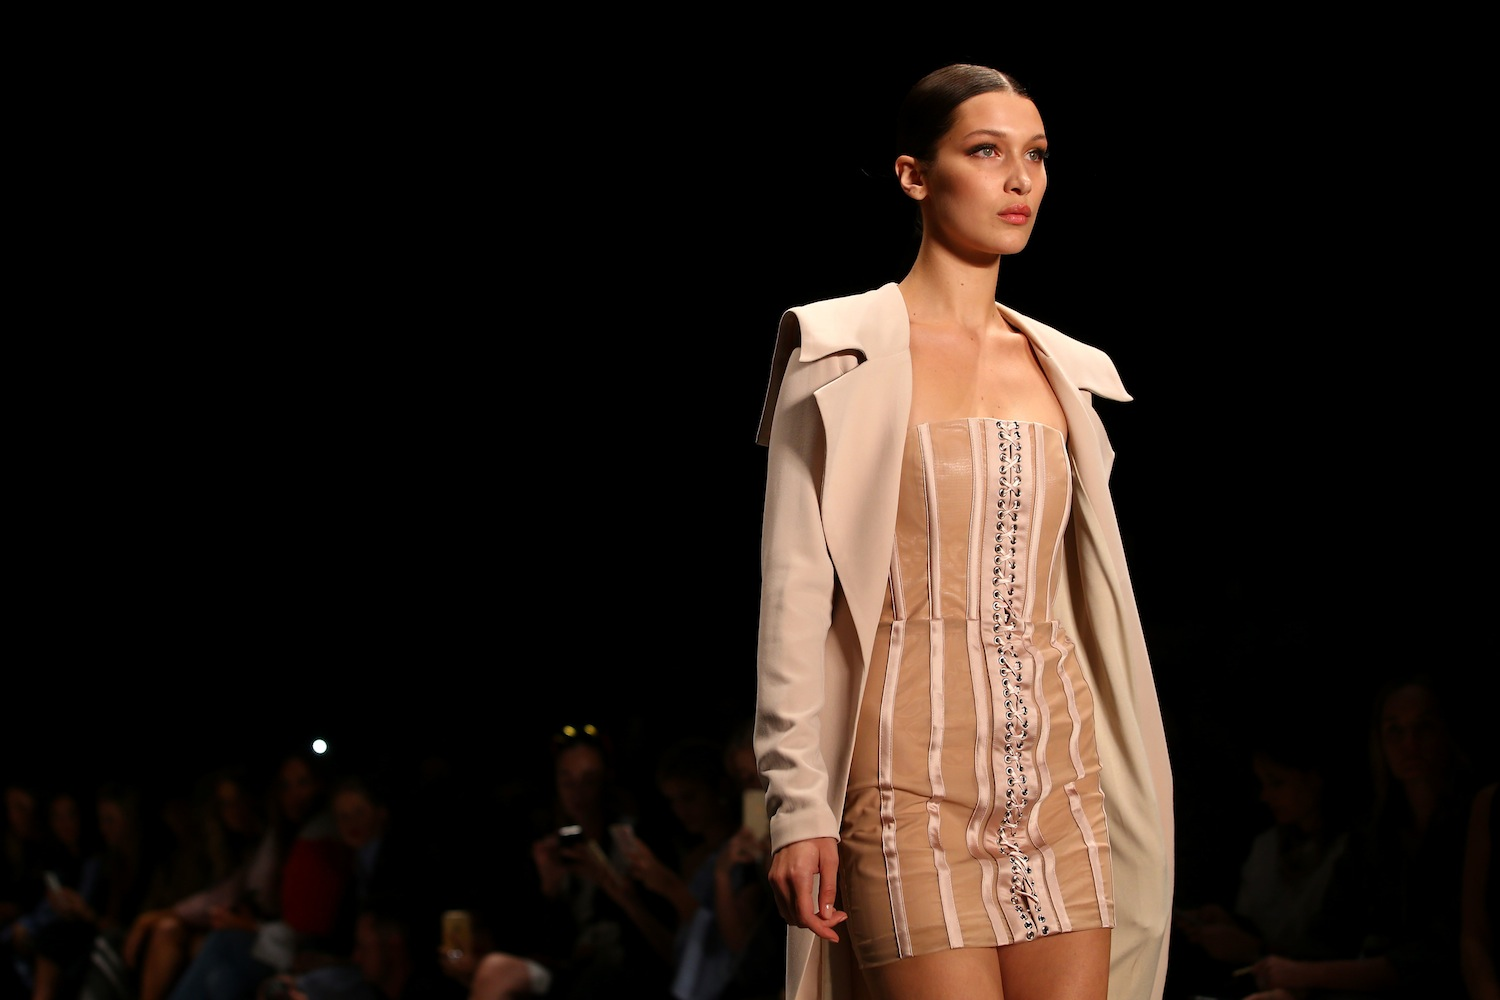 SYDNEY, AUSTRALIA - MAY 16: Model Bella Hadid walks the runway during the Misha Collection show at Mercedes-Benz Fashion Week Resort 17 Collections at Carriageworks on May 16, 2016 in Sydney, Australia. (Photo by Mark Nolan/Getty Images) *** Local Caption *** Bella Hadid